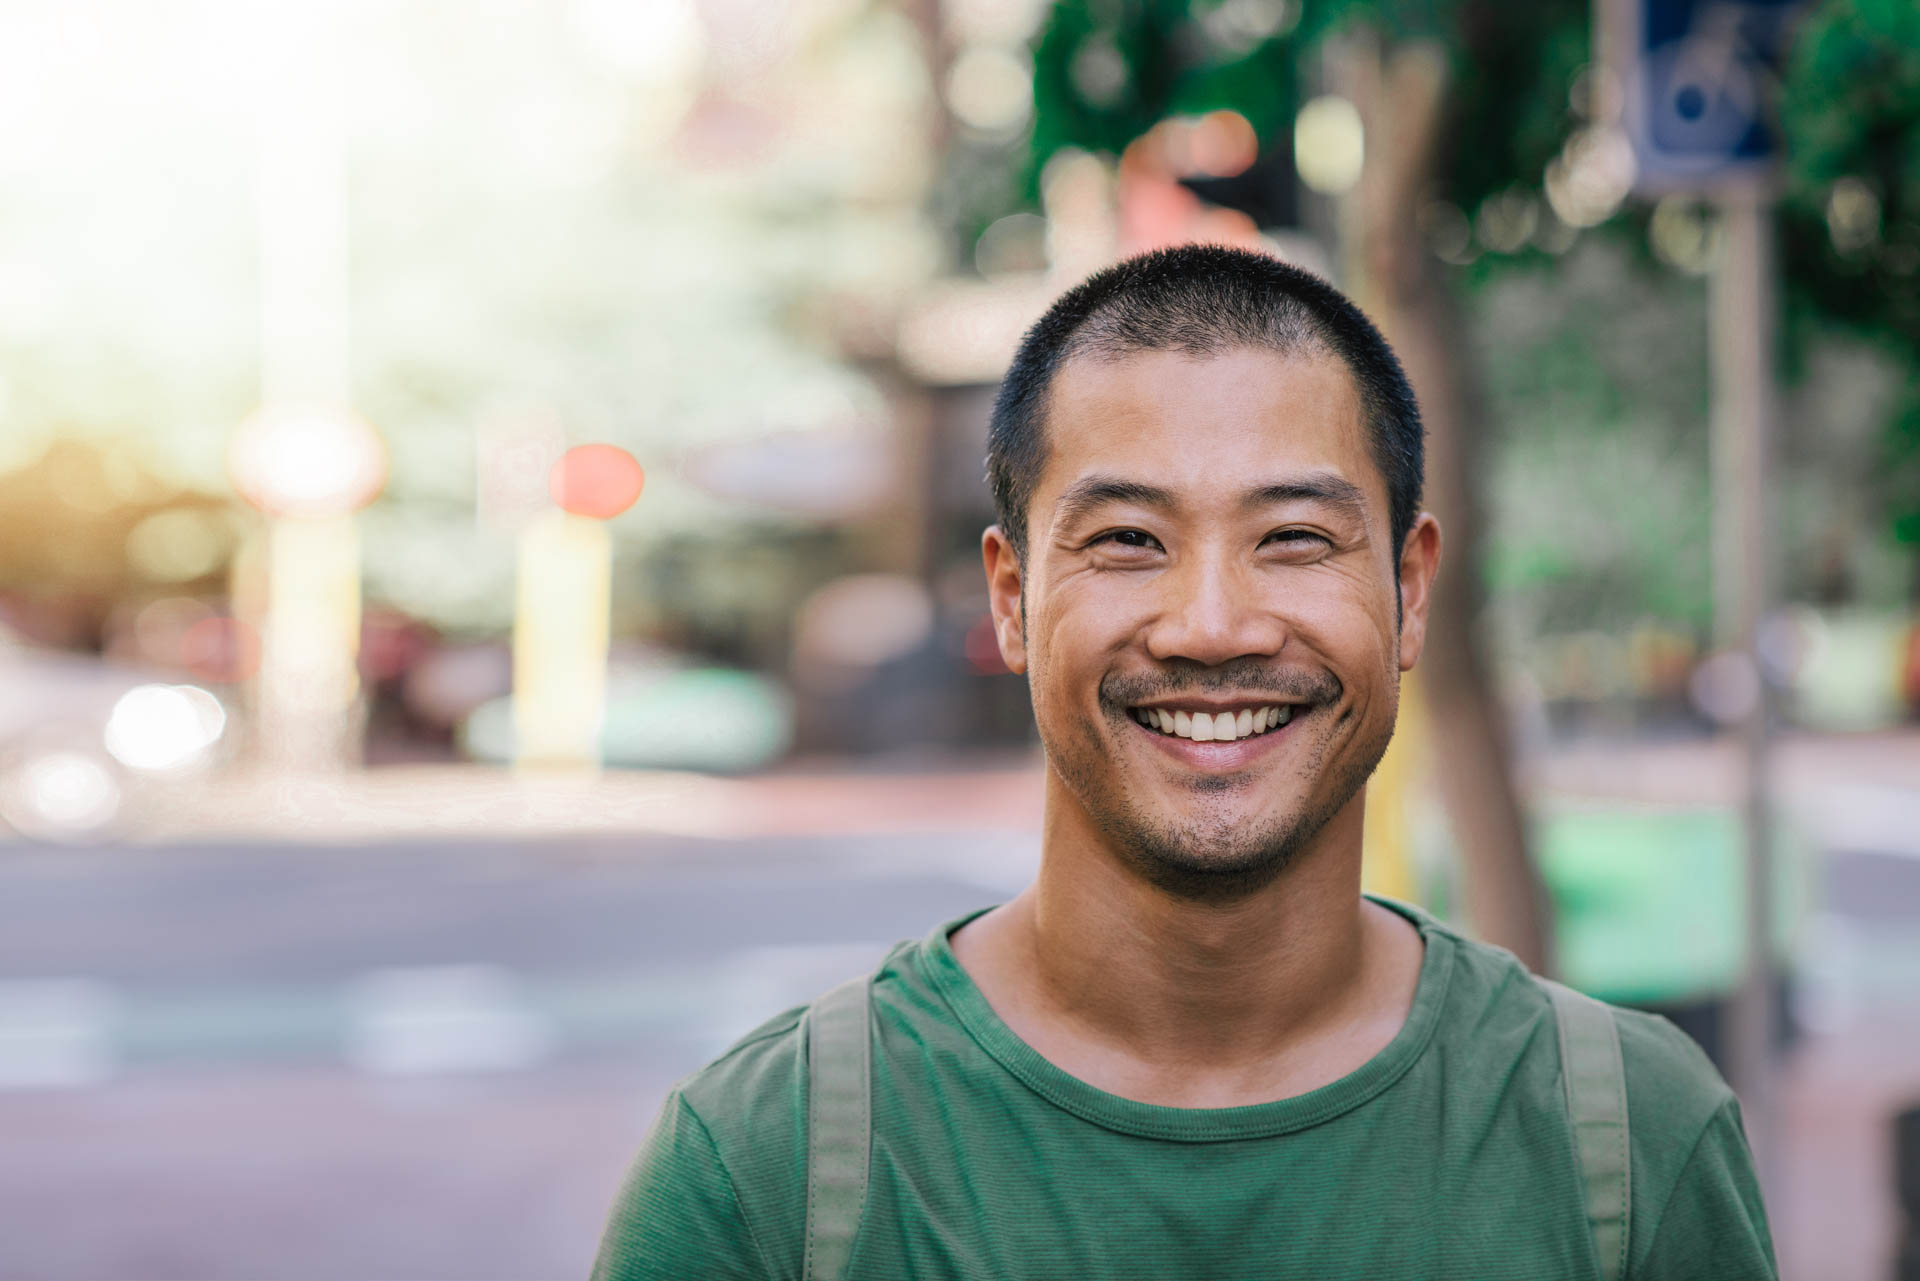 Young Asian man smiling confidently on a city street